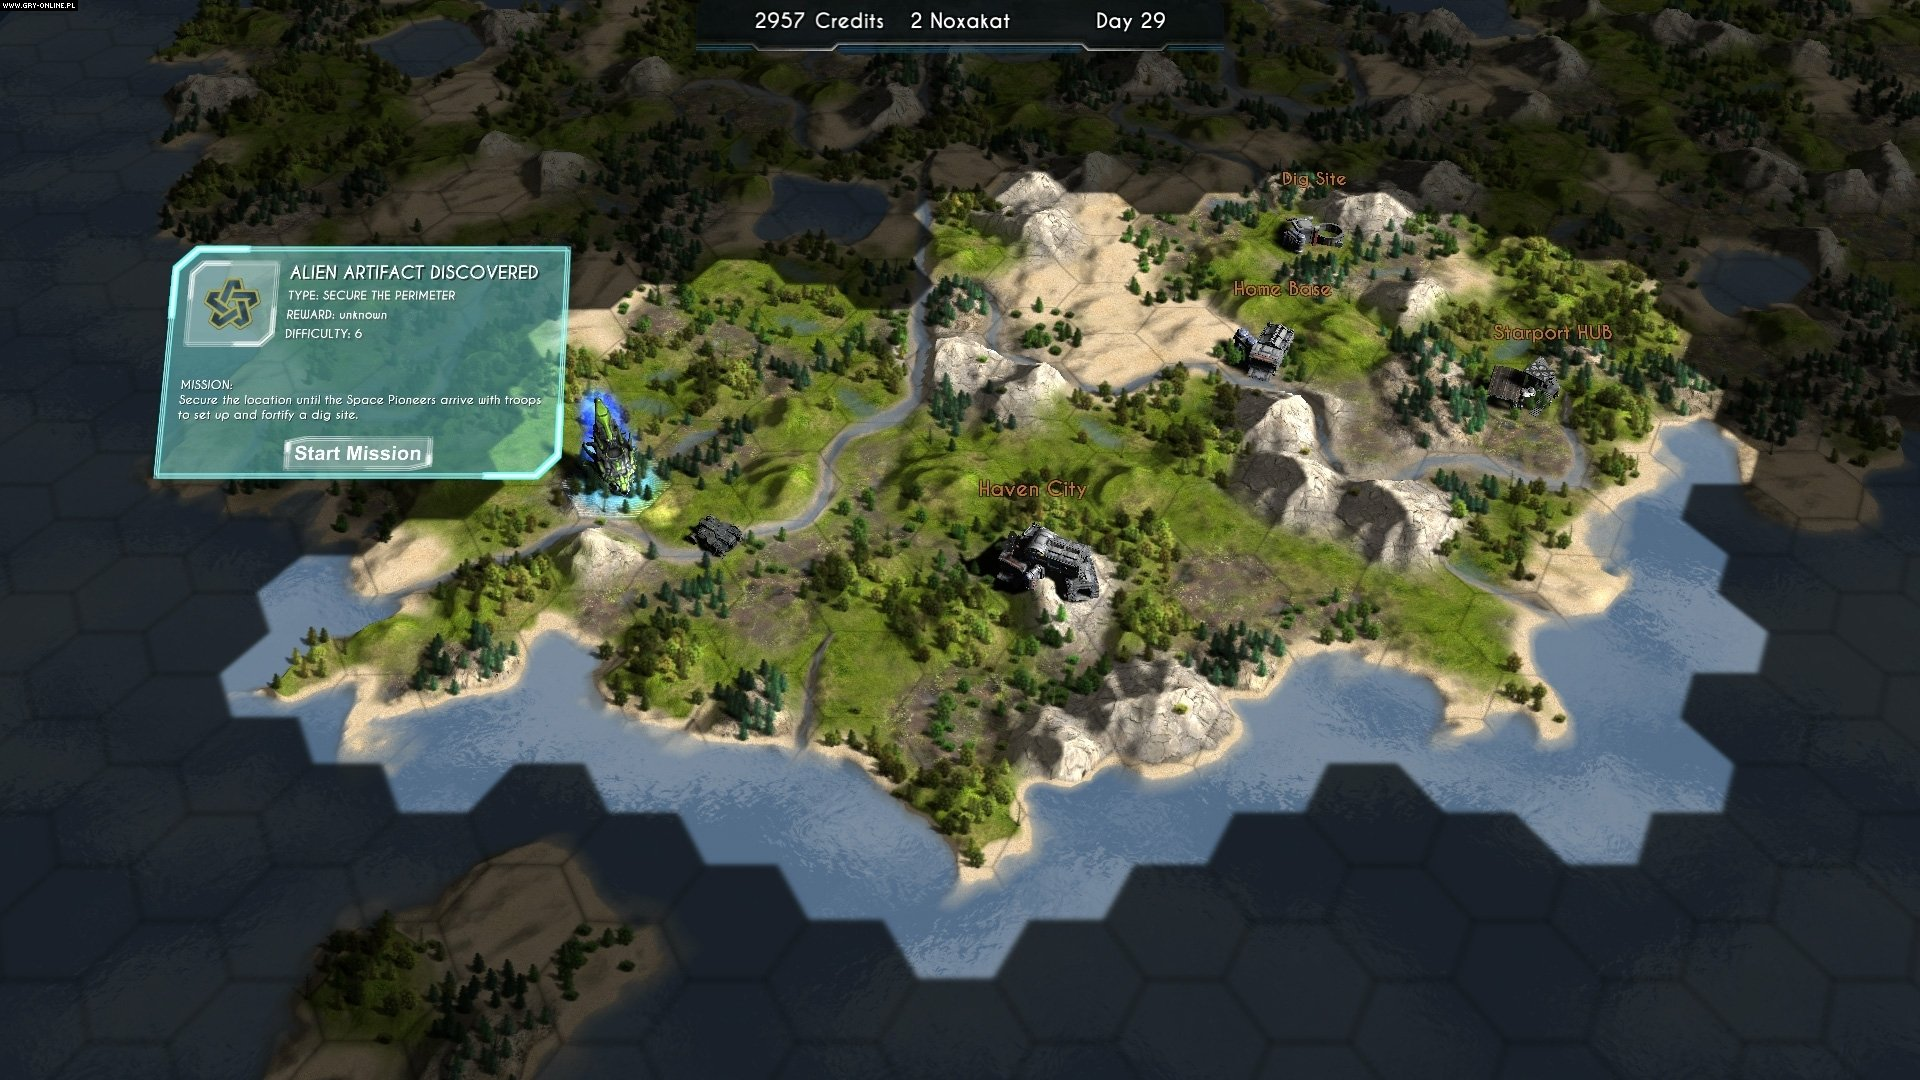 Shock Tactics PC Games Image 1/9, Point Blank Games, EuroVideo Medien